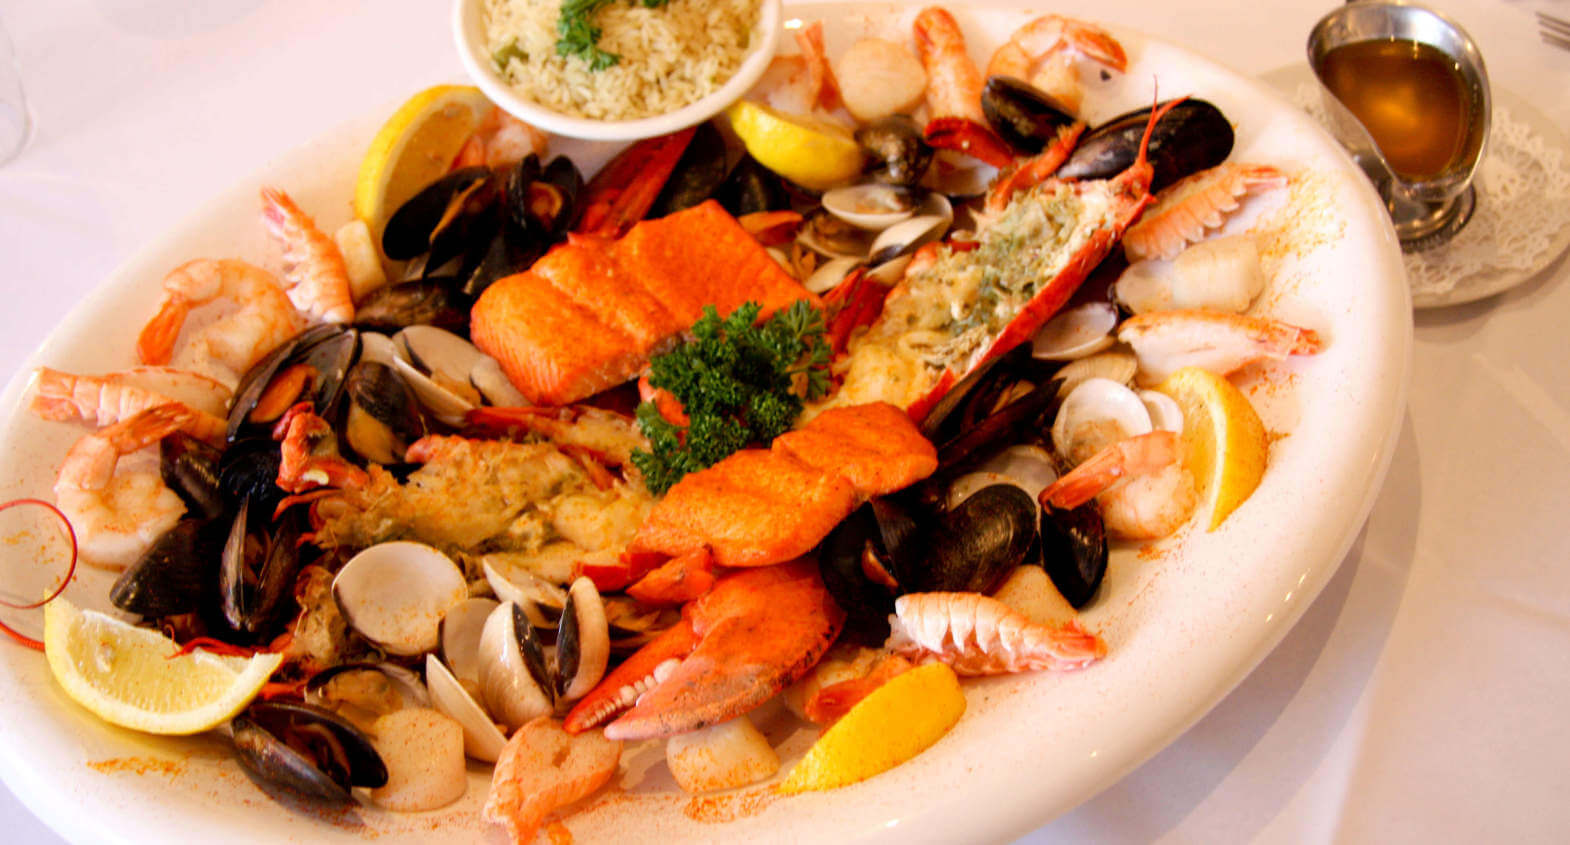 The seafood feast package